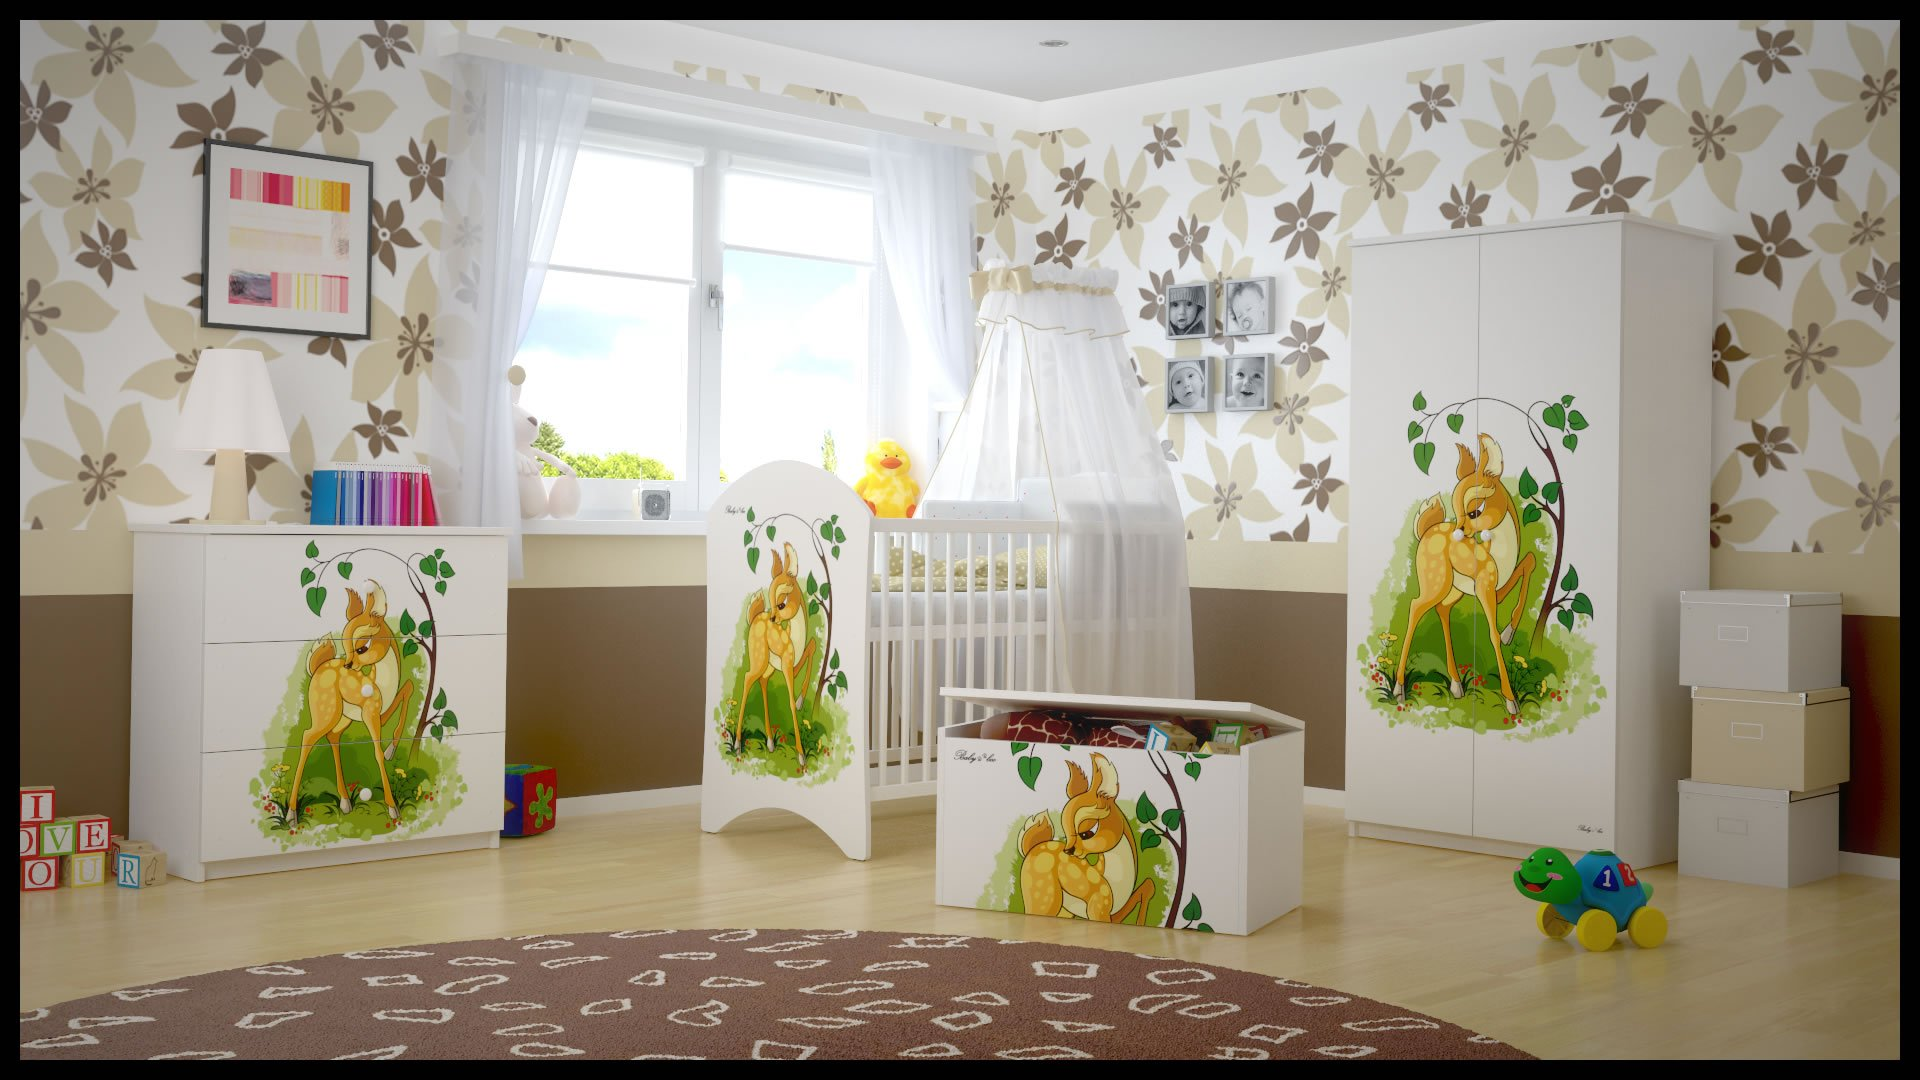 5 PCS BABY NURSERY FURNITURE SET - COT + MATTRESS + WARDROBE + CHEST OF DRAWERS + TOY BOX (model 15)  Included: cot + mattress + wardrobe + chest of drawers + toy box Material: wood GREAT QUALITY 1